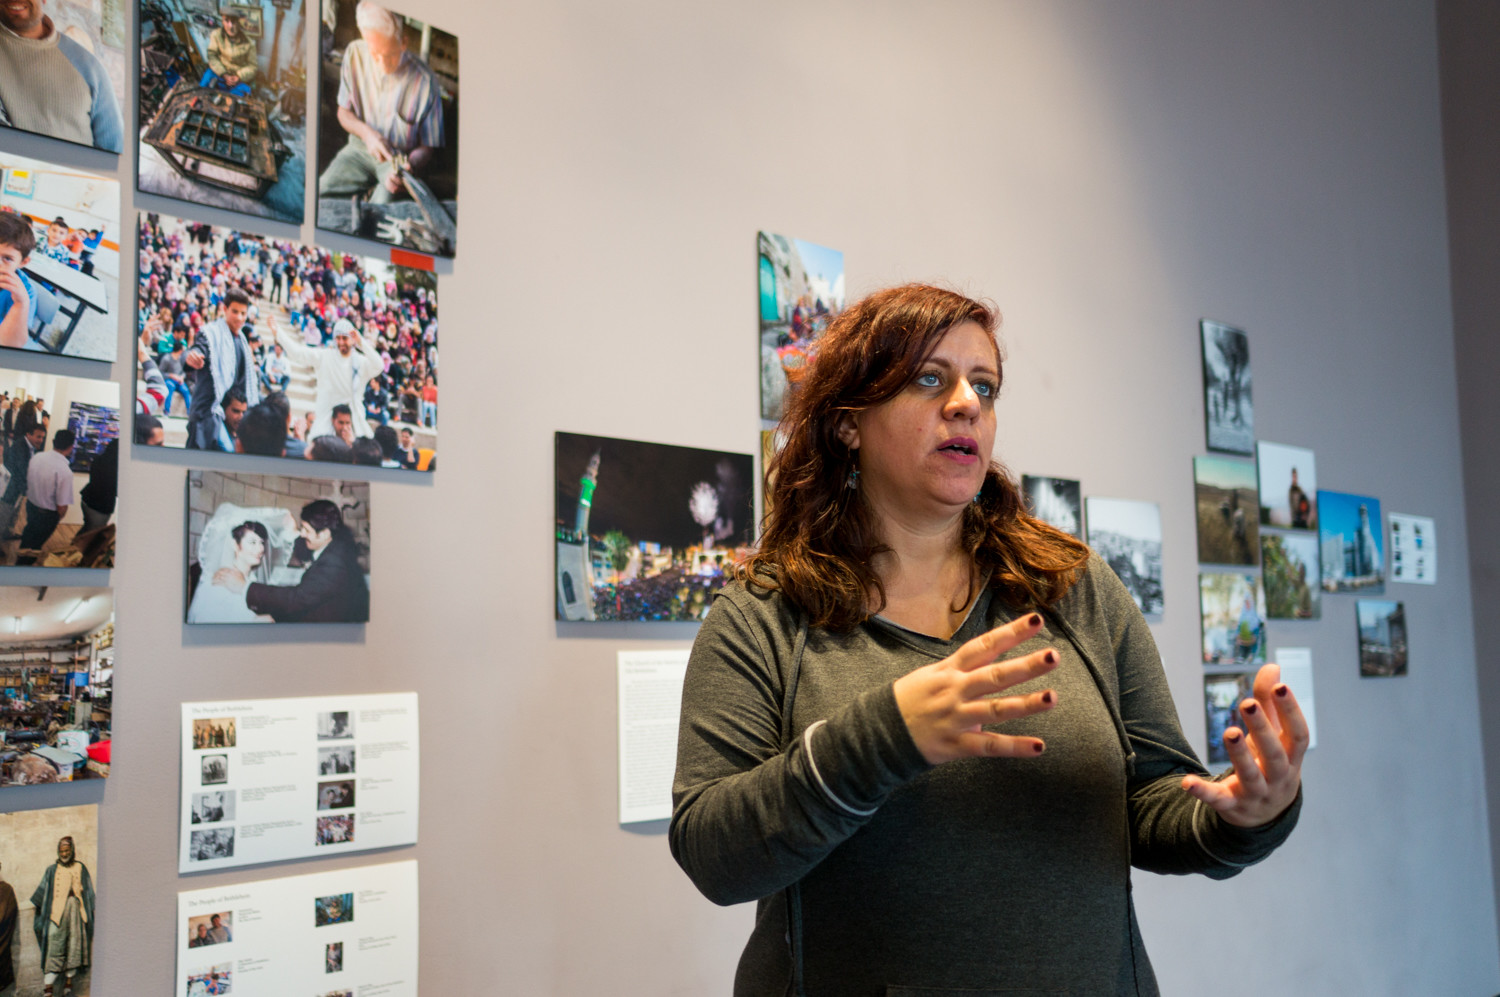 Nada Odeh talks about the different works on display in the traveling exhibition 'Bethlehem Beyond the Wall' at Manhattan College. Odeh is involved with the Museum of the Palestinian People, and helped put up the exhibition at Manhattan College.